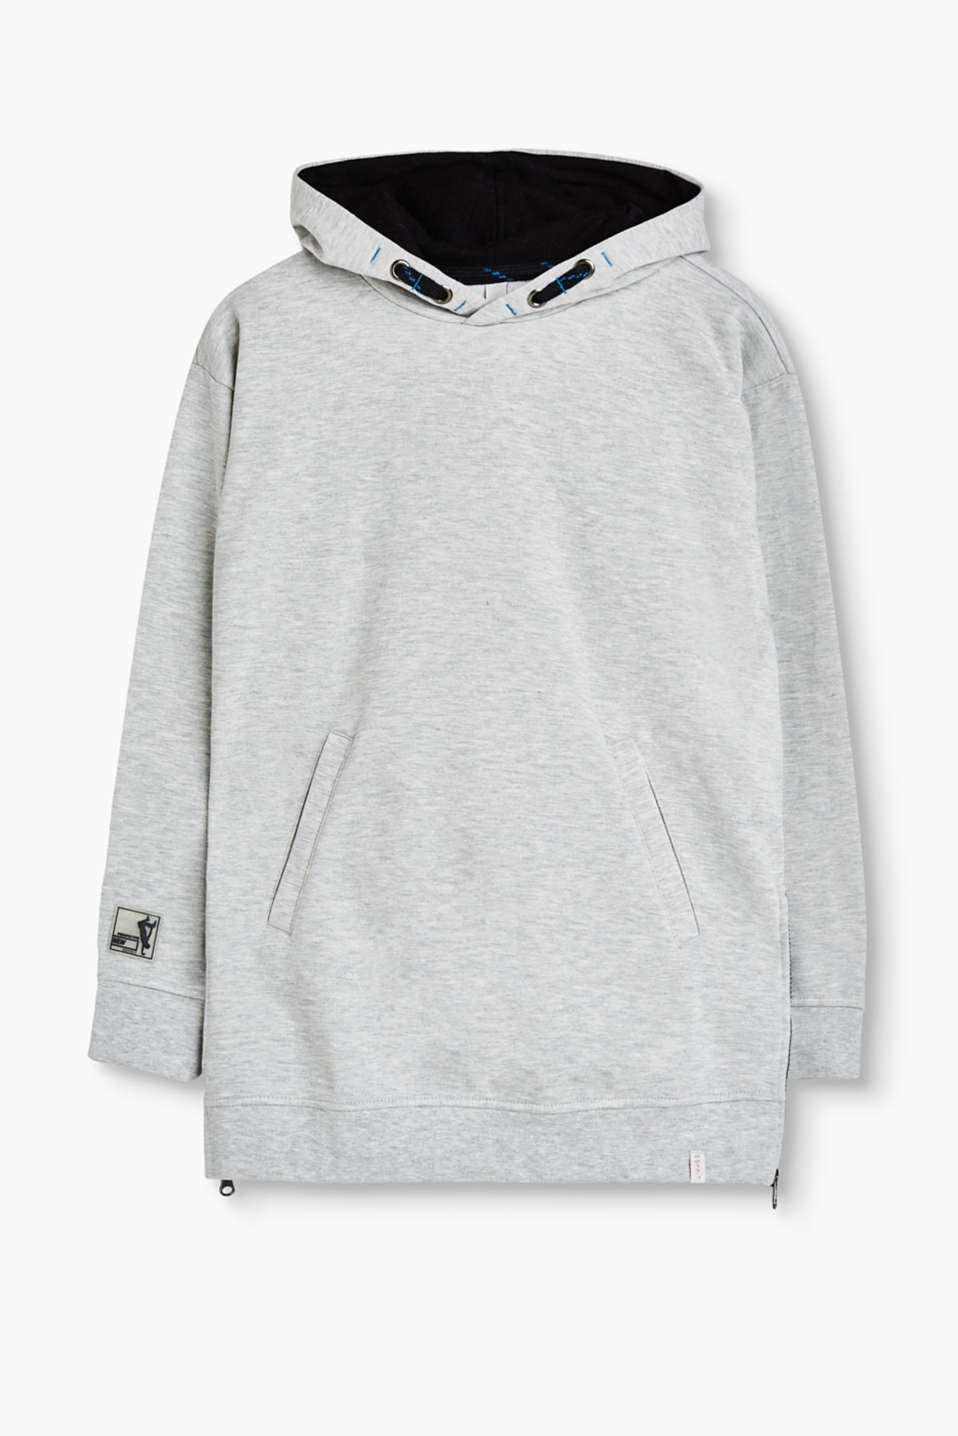 Long melange sweatshirt with a sporty hood and side hem zips